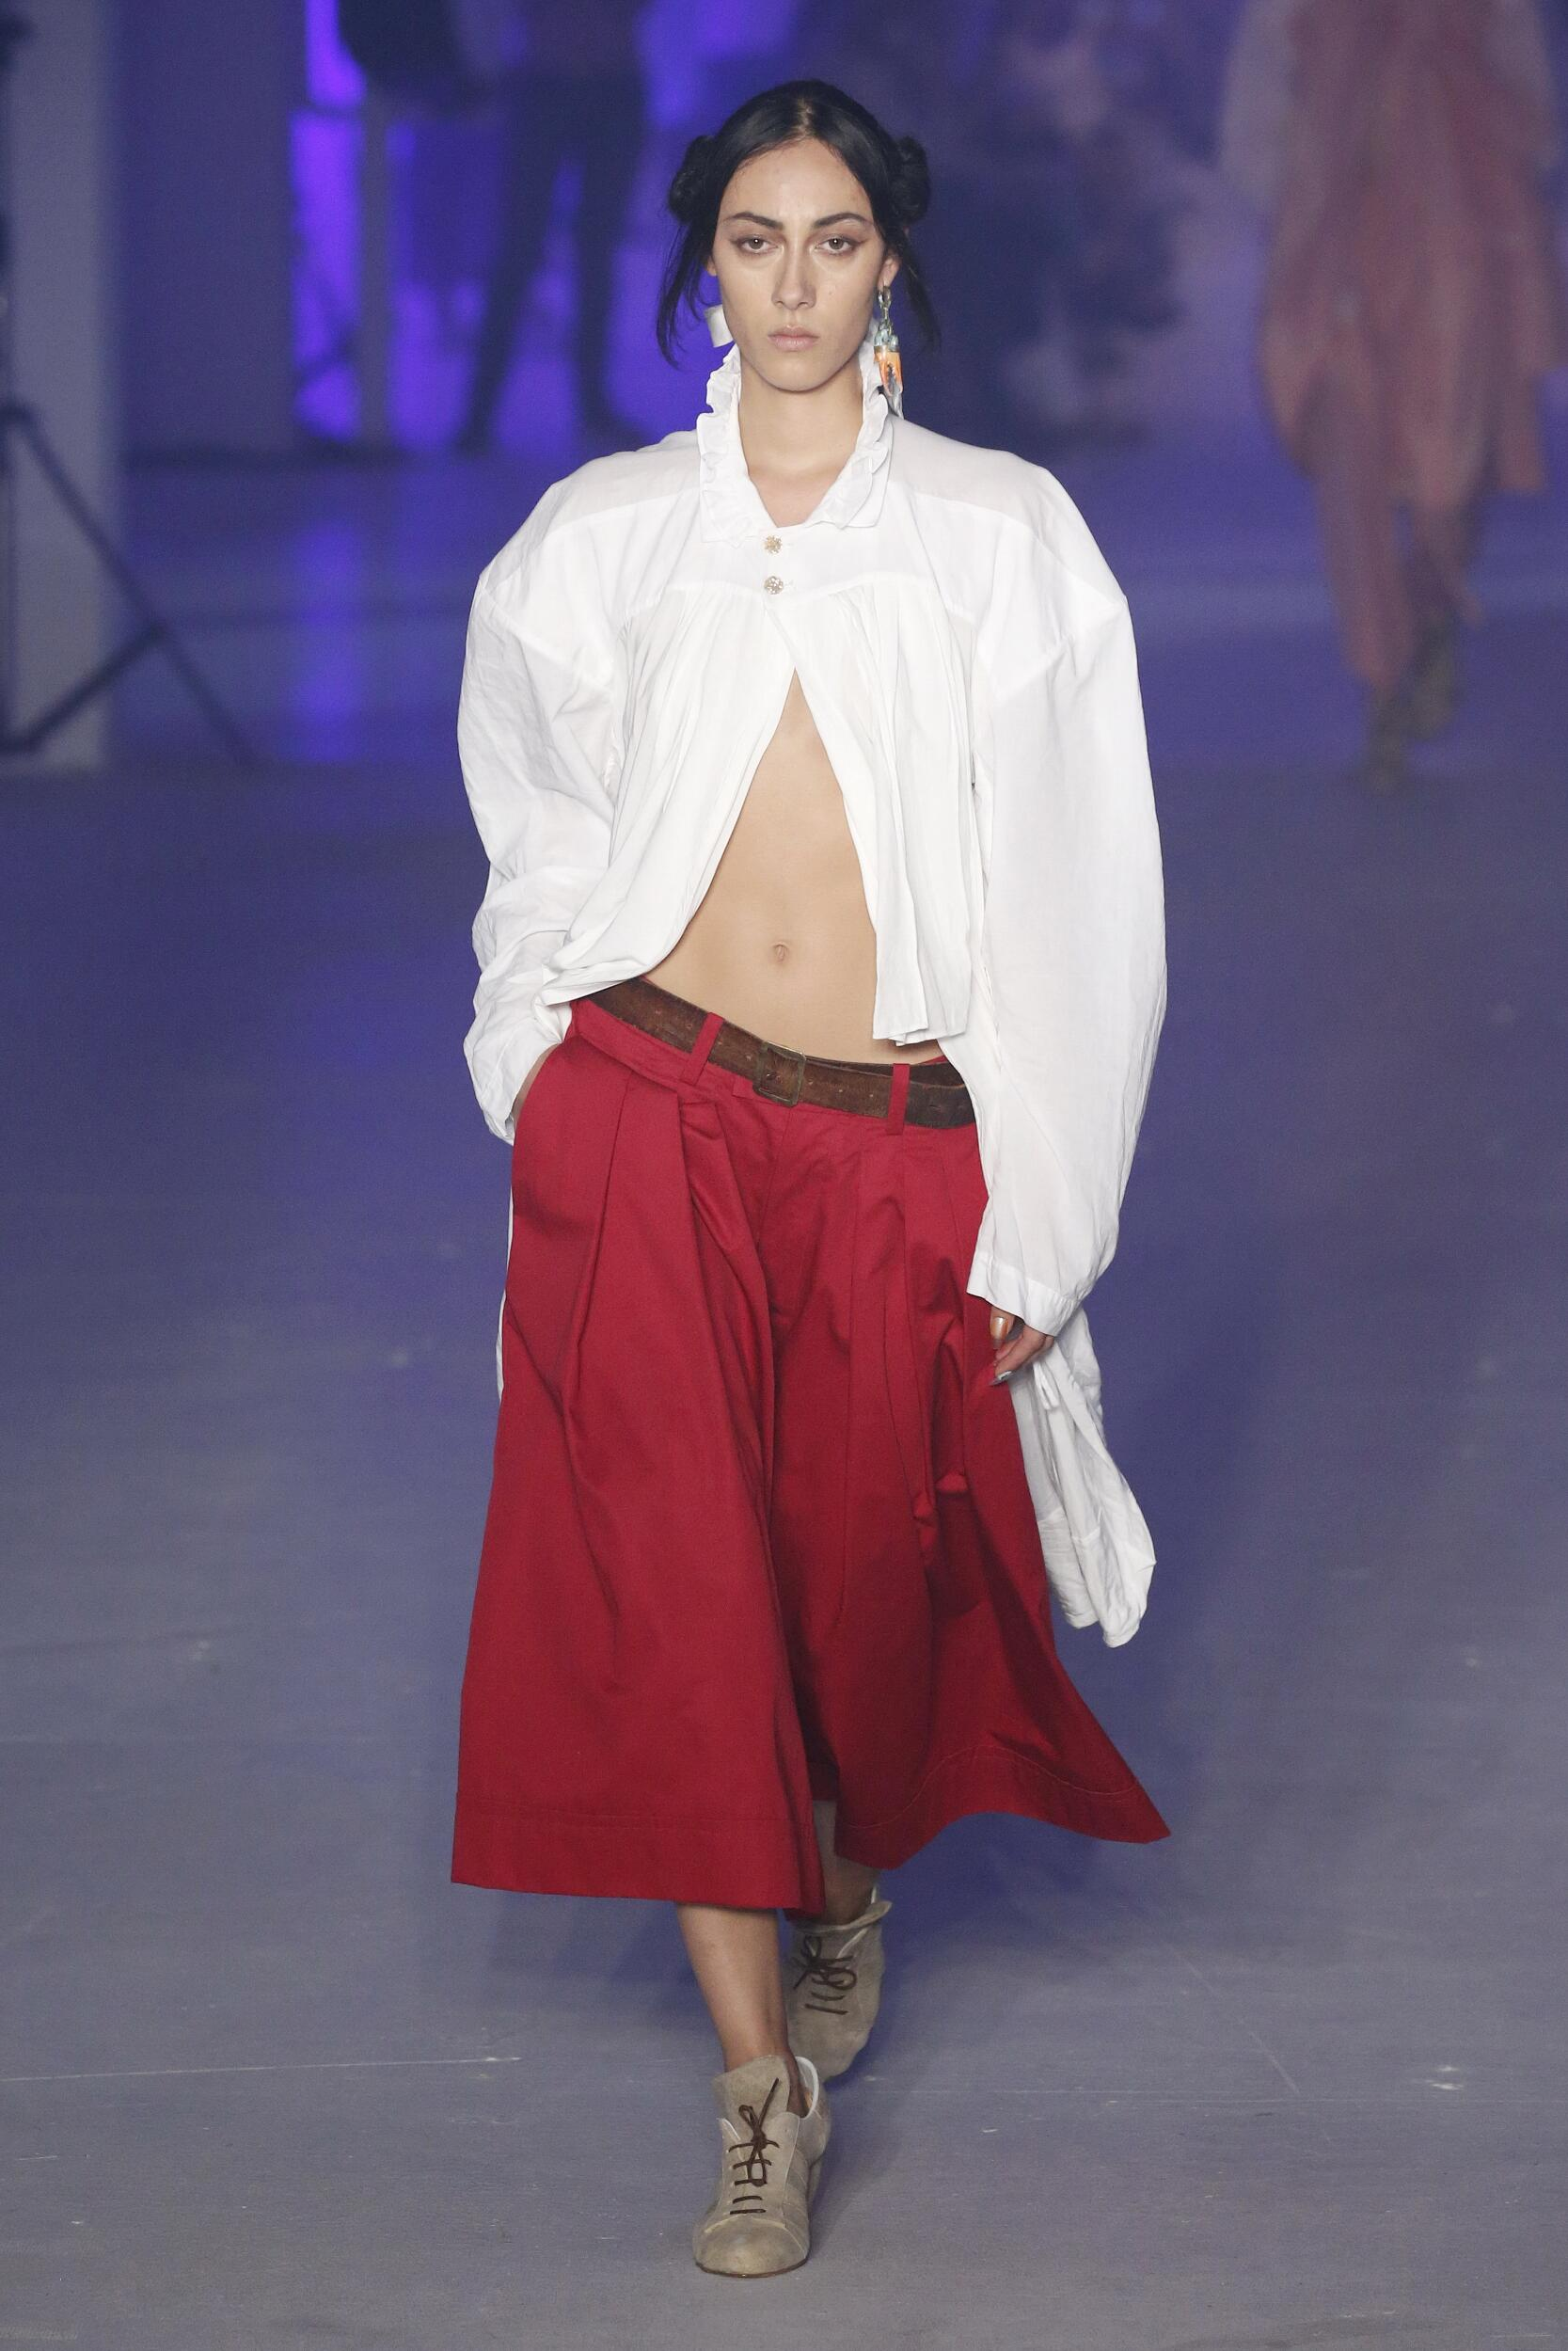 Catwalk Andreas Kronthaler for Vivienne Westwood Woman Fashion Show Summer 2020